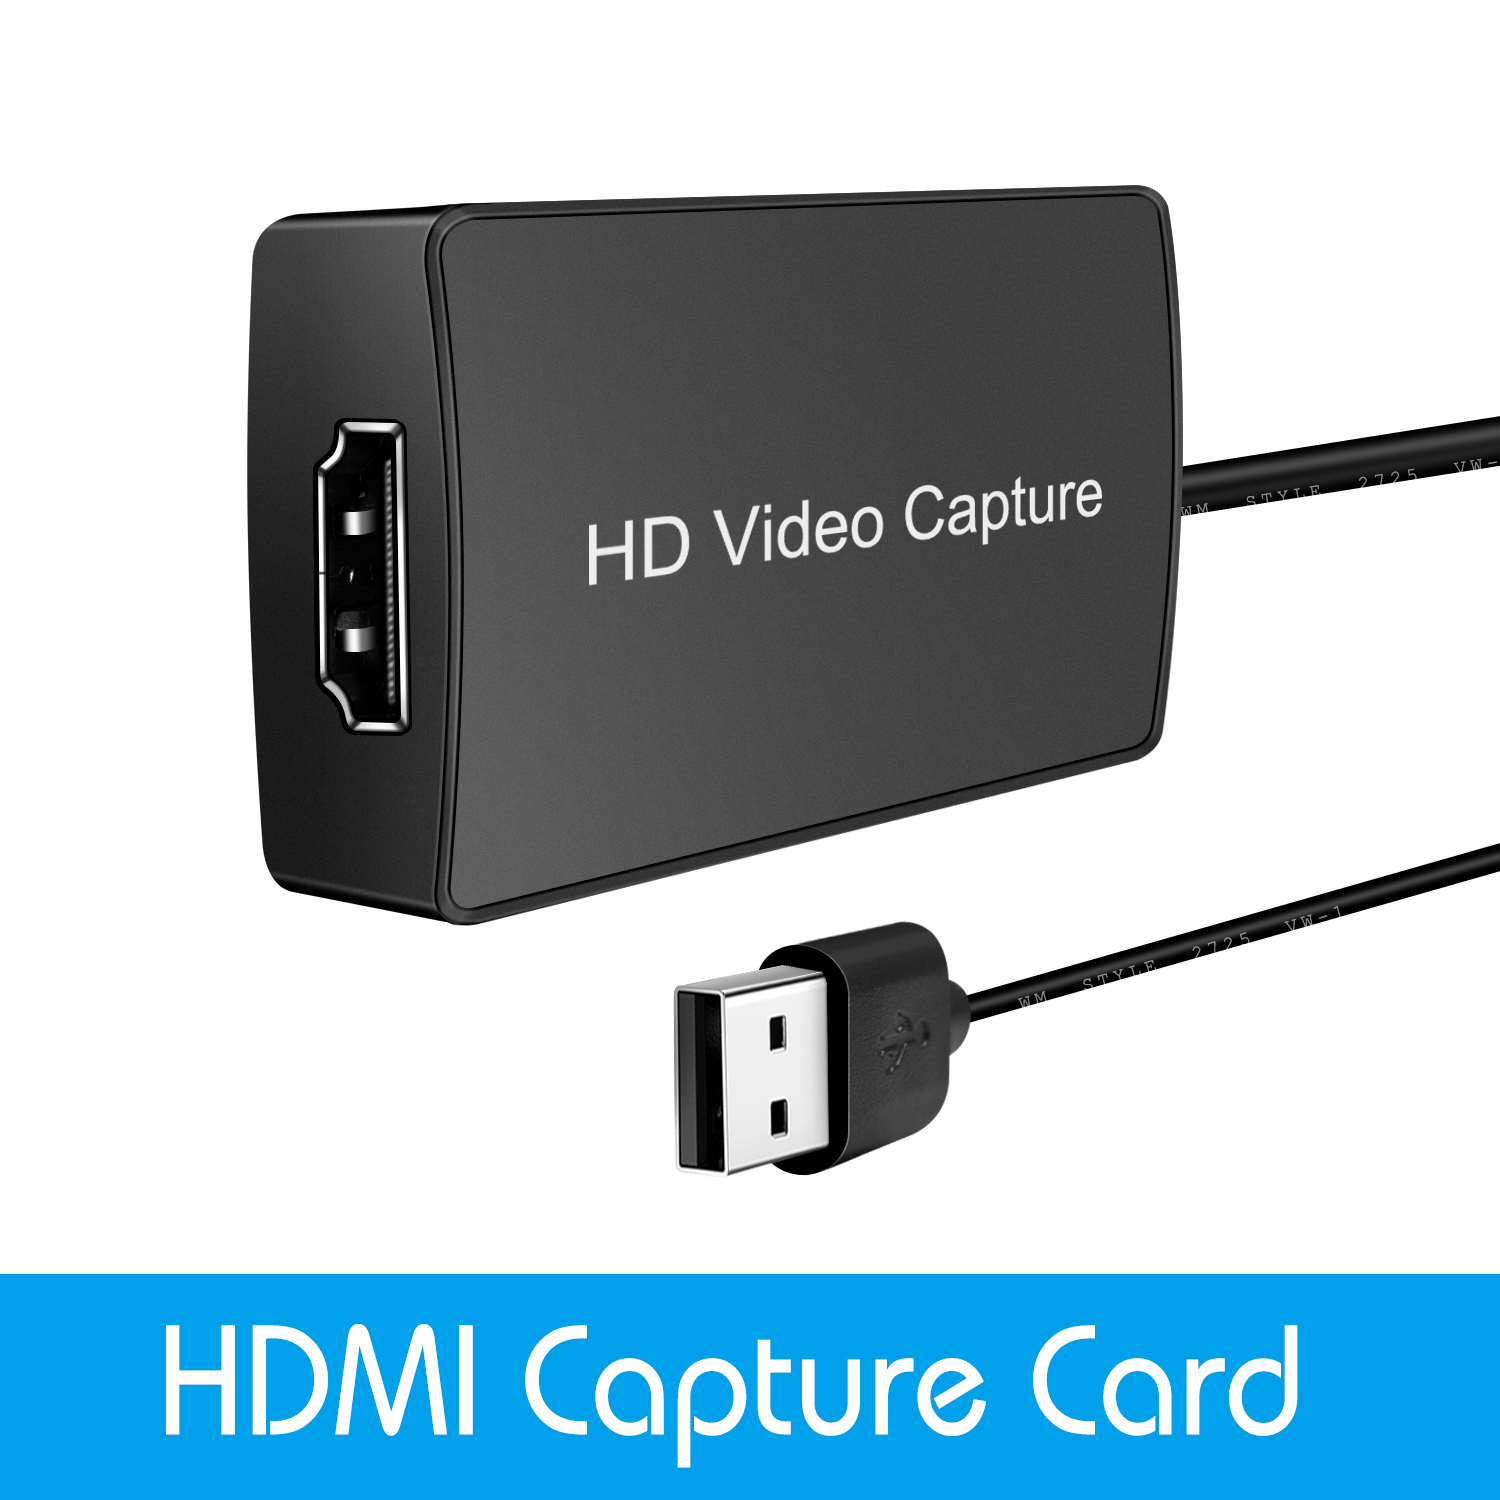 GV-V30 USB Video Capture